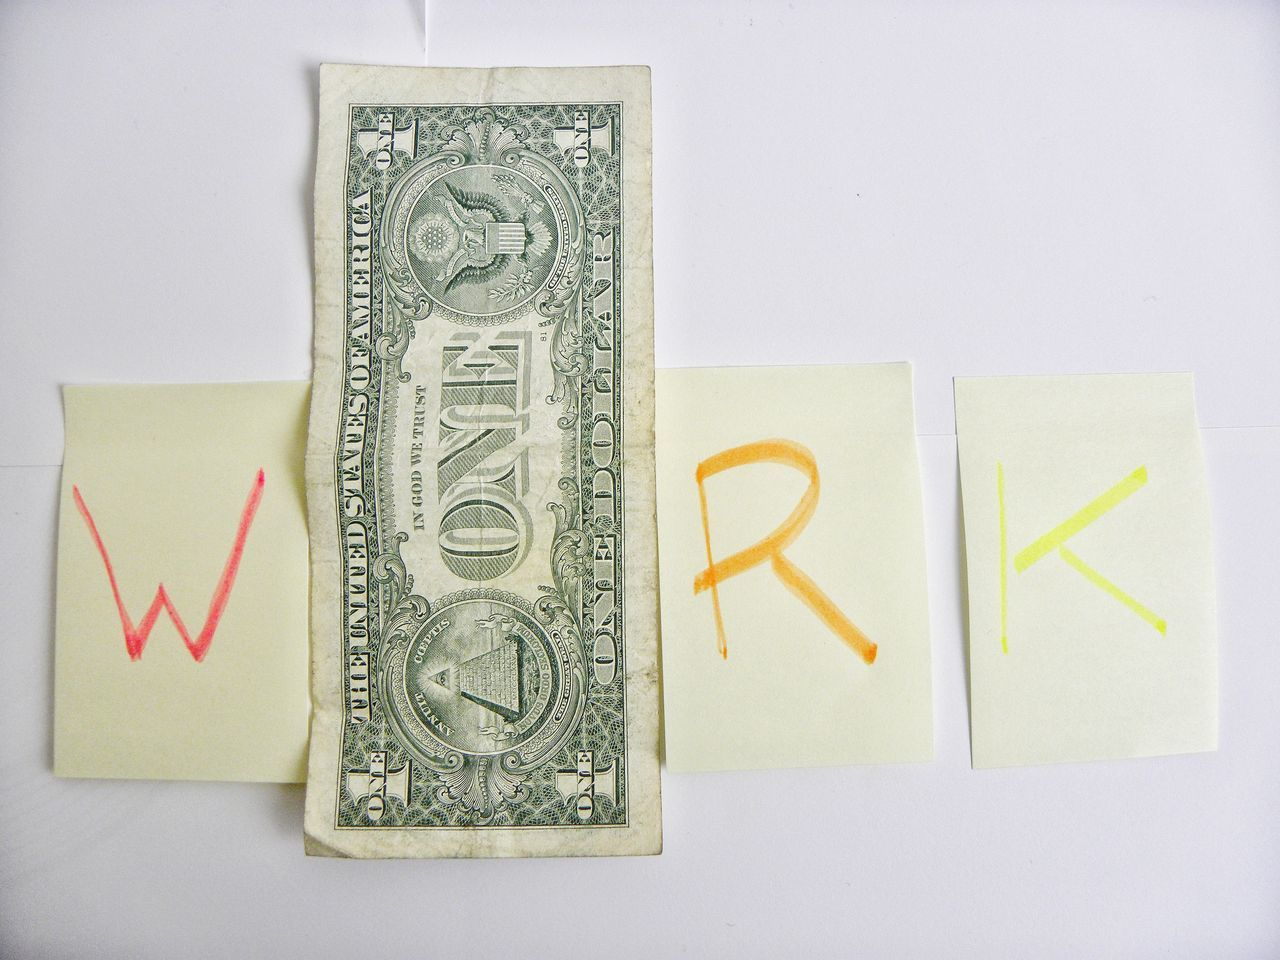 Directly Above Work Letters Spelling Work Business Dollars Dollar Bill Money Cash One Dollar  Earnings Banknote Colours Alphabet Post-It Note